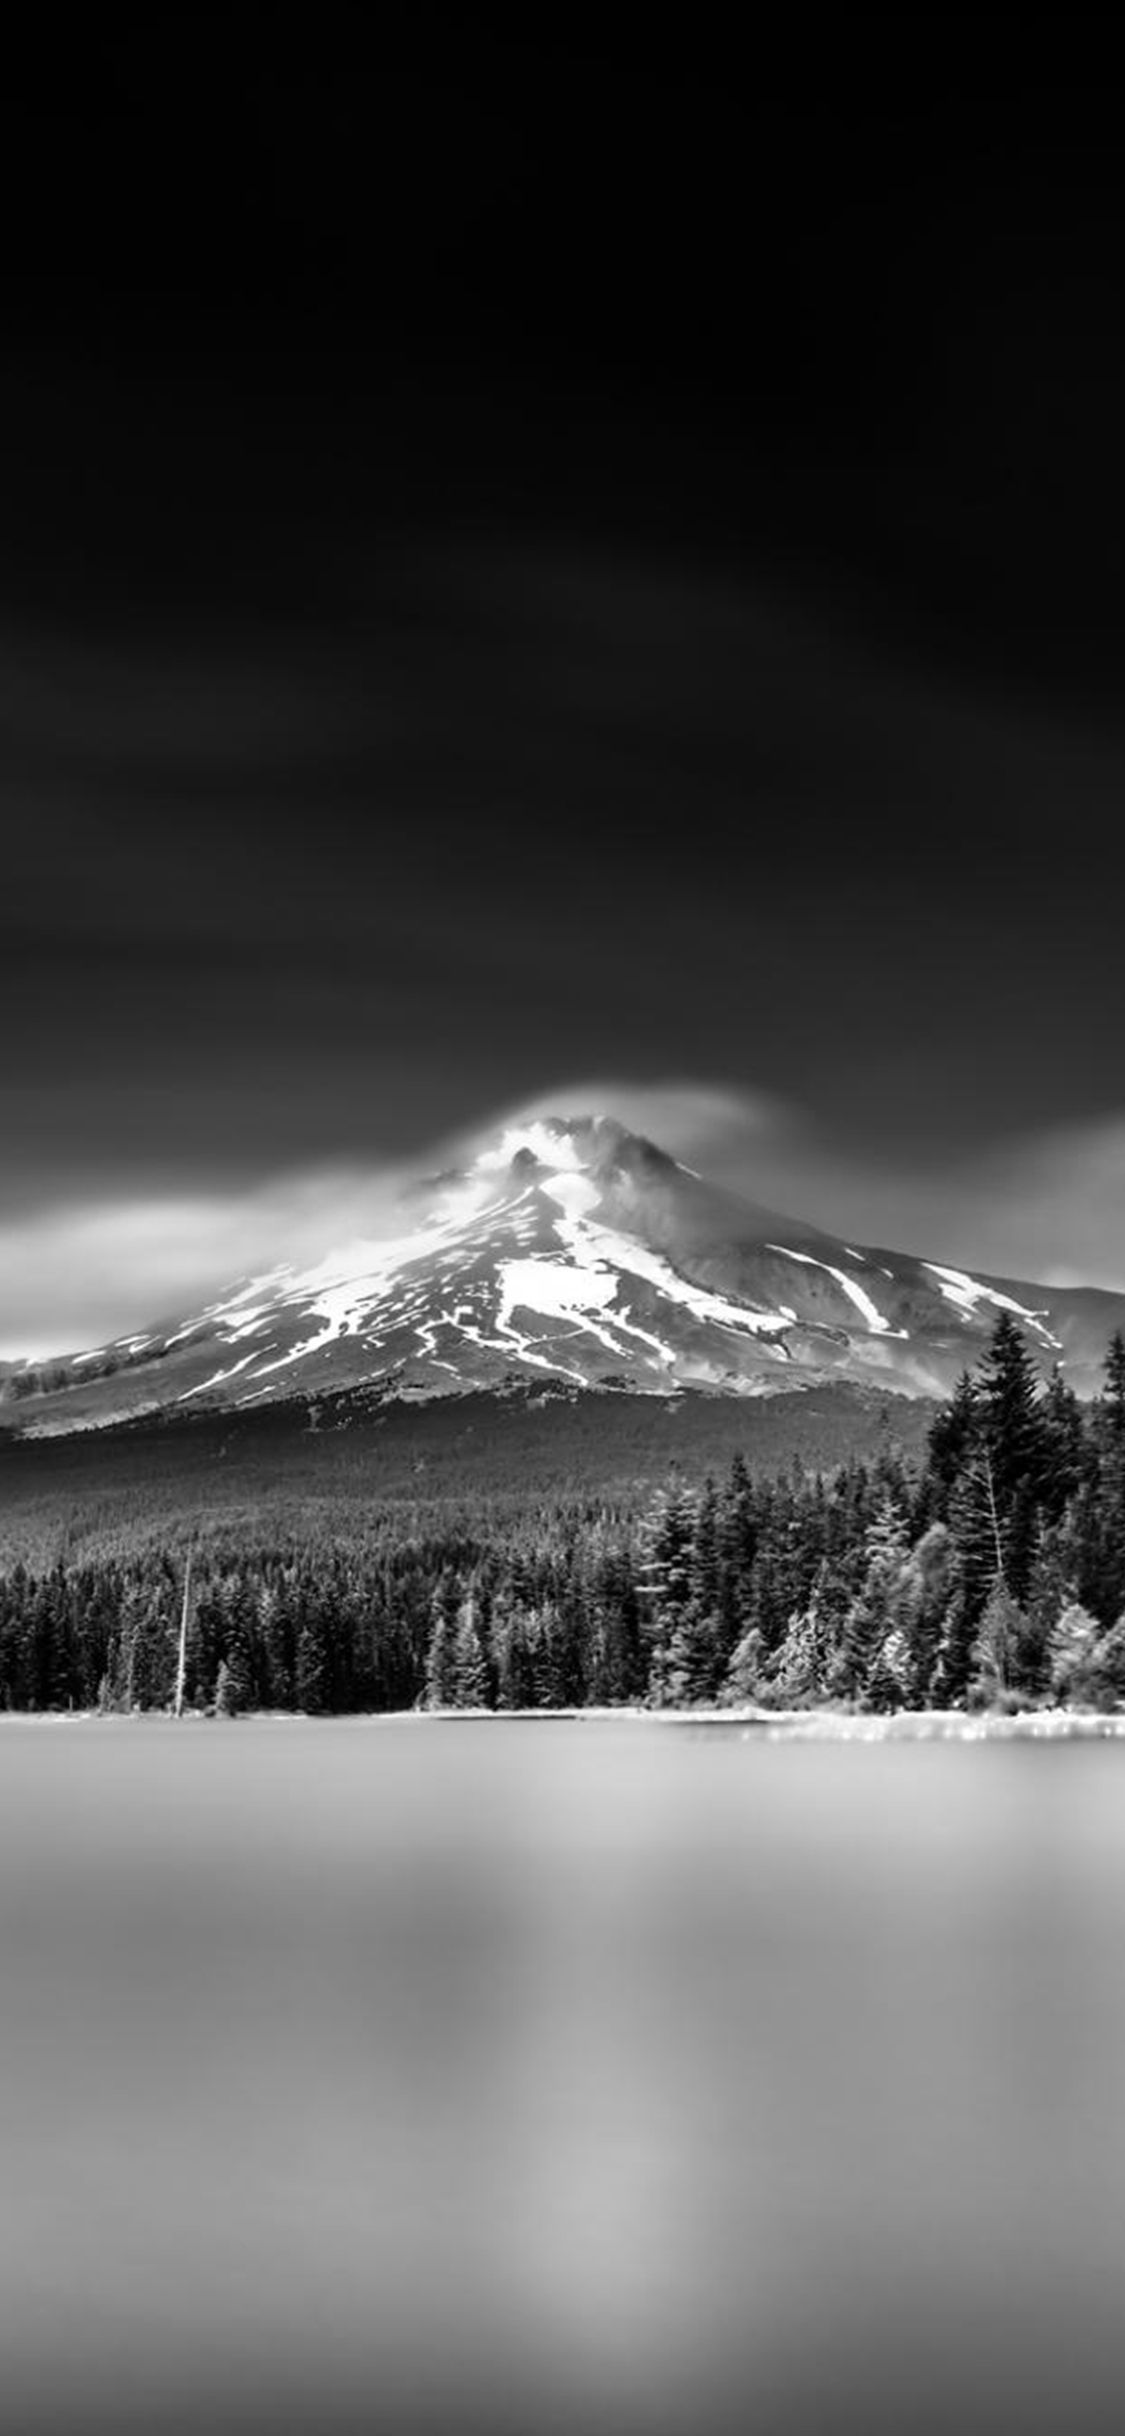 Nature Snowy Mountains Lake Grayscale Landscape Iphone X Wallpaper Landscape Wallpaper Landscape Snowy Mountains